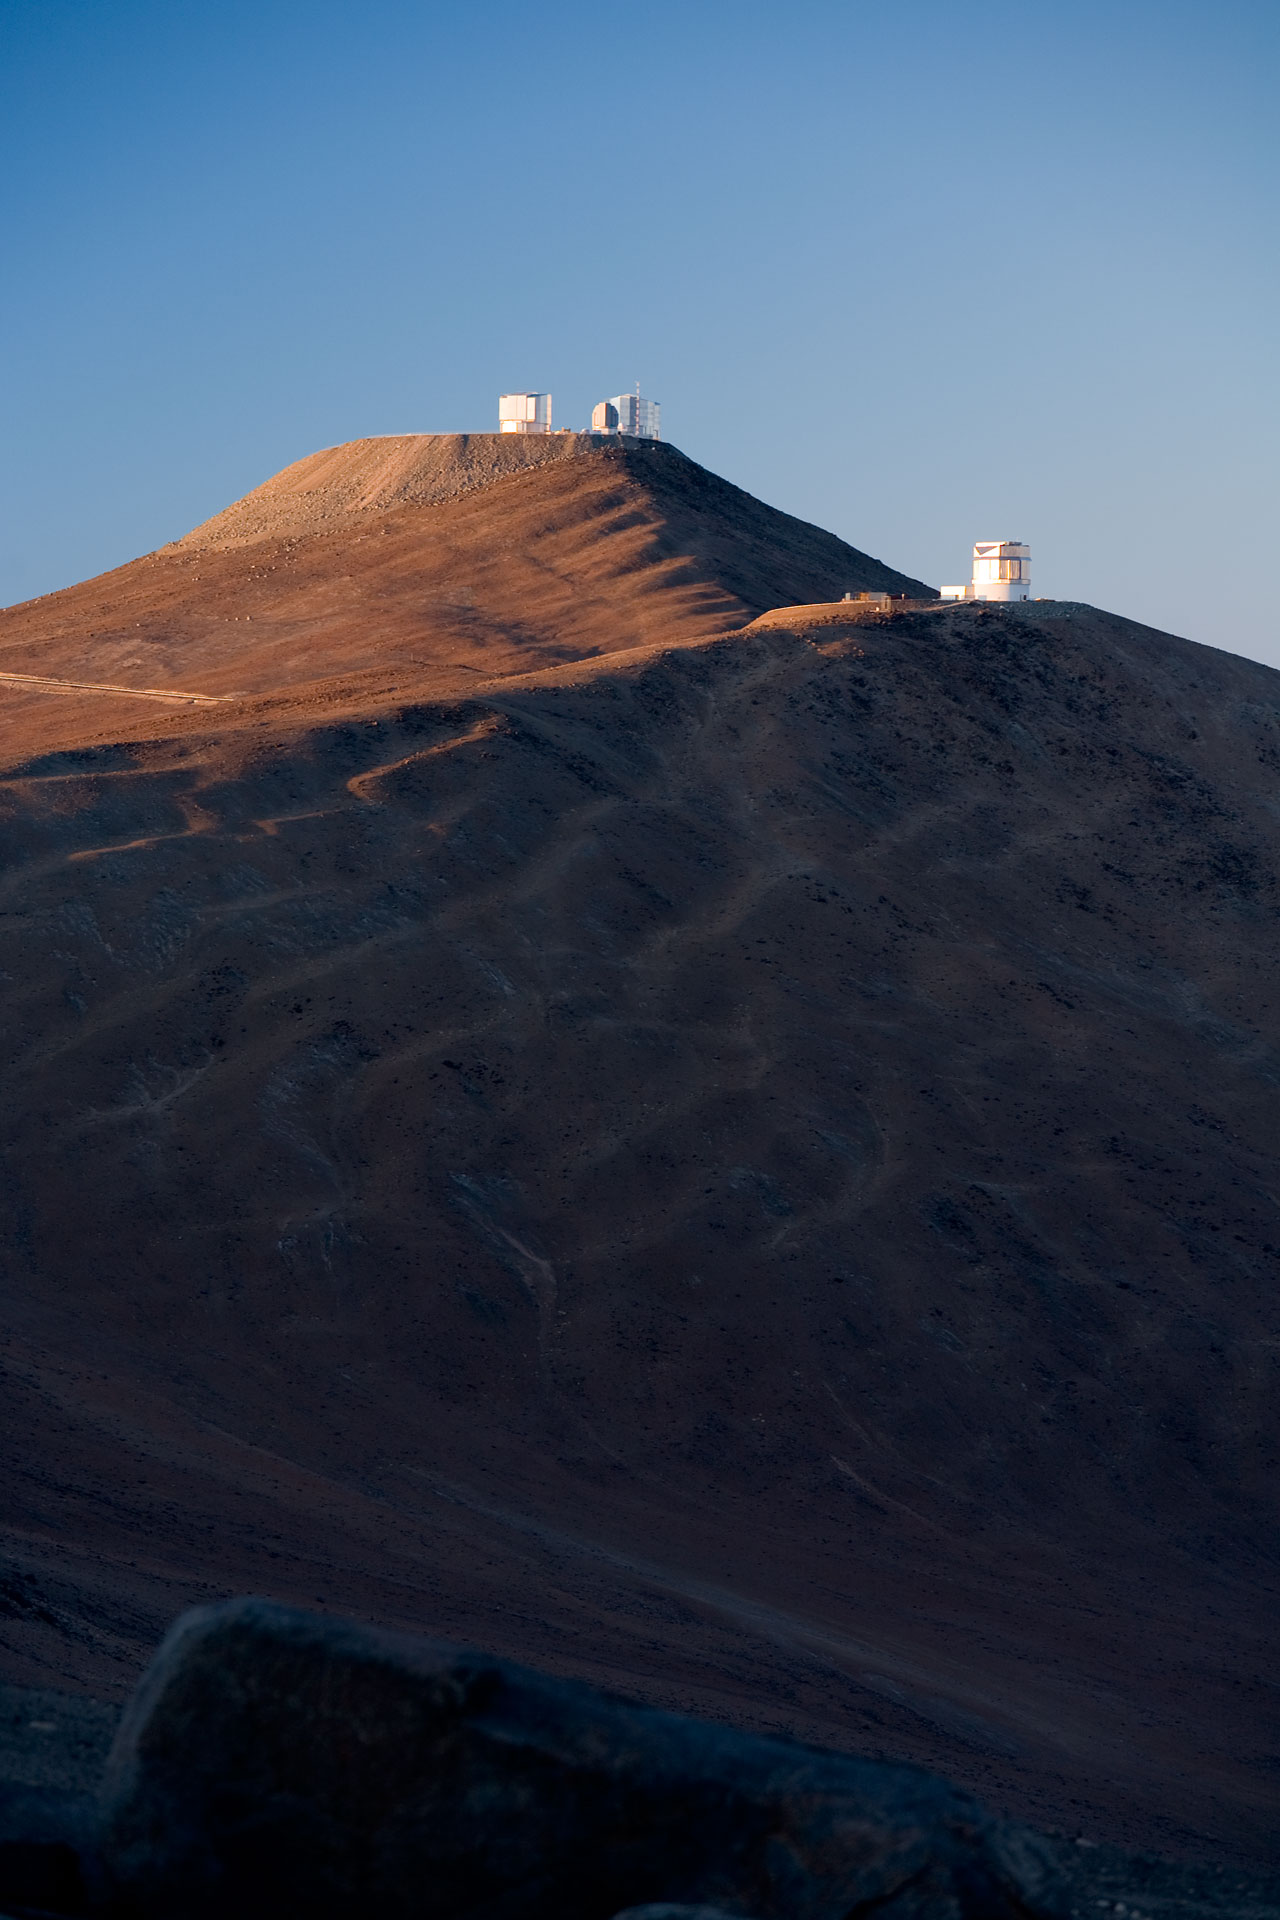 VLT and VISTA in Early Sunlight*